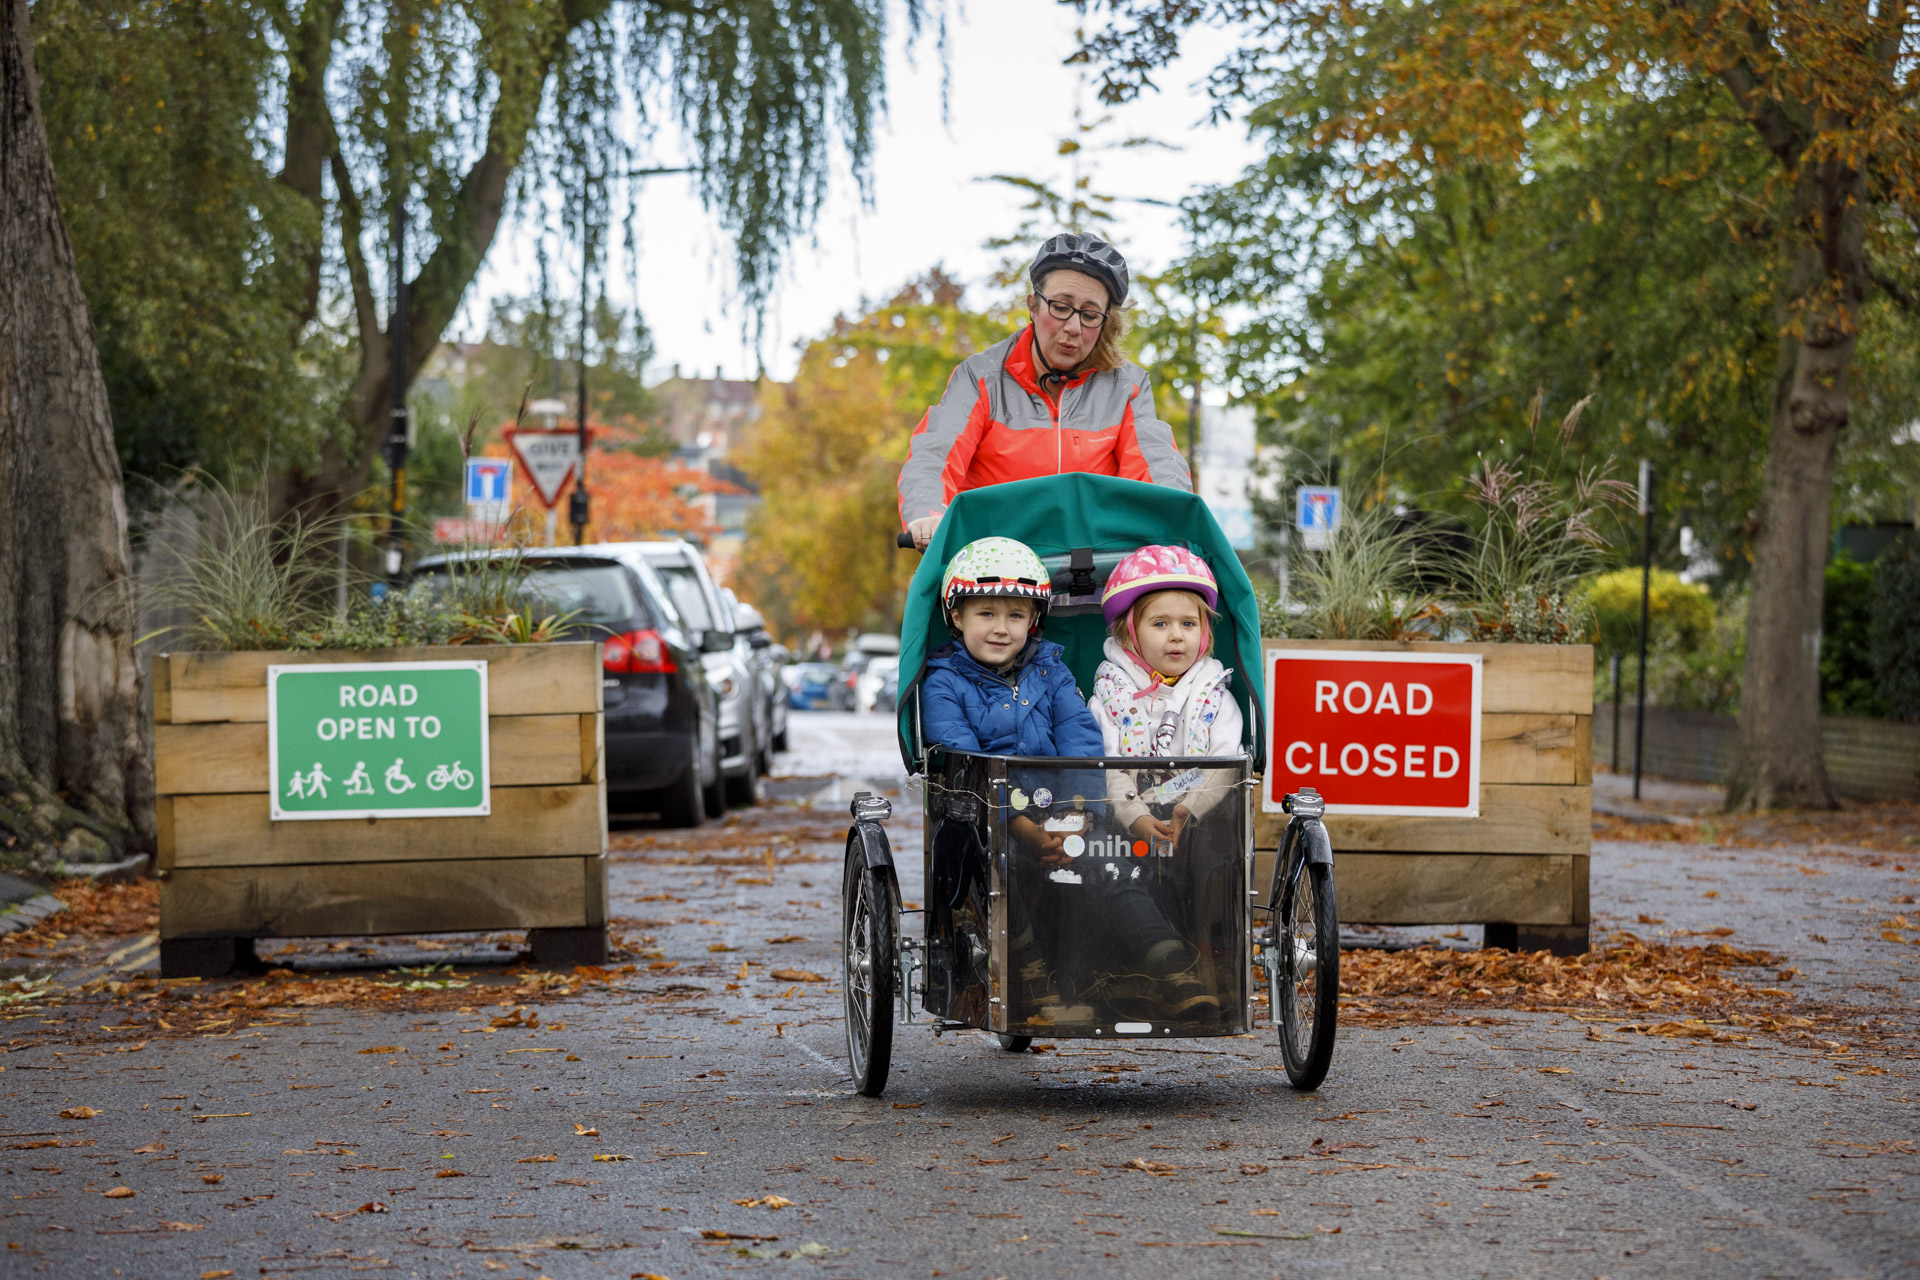 An adult rides a cargo bike towards the camera, with two children sitting together in the front section. Behind them, signs attached to wooden planters announce 'Road closed' and 'Road open to bikes, pedestrians, wheelchairs, scooters etc'